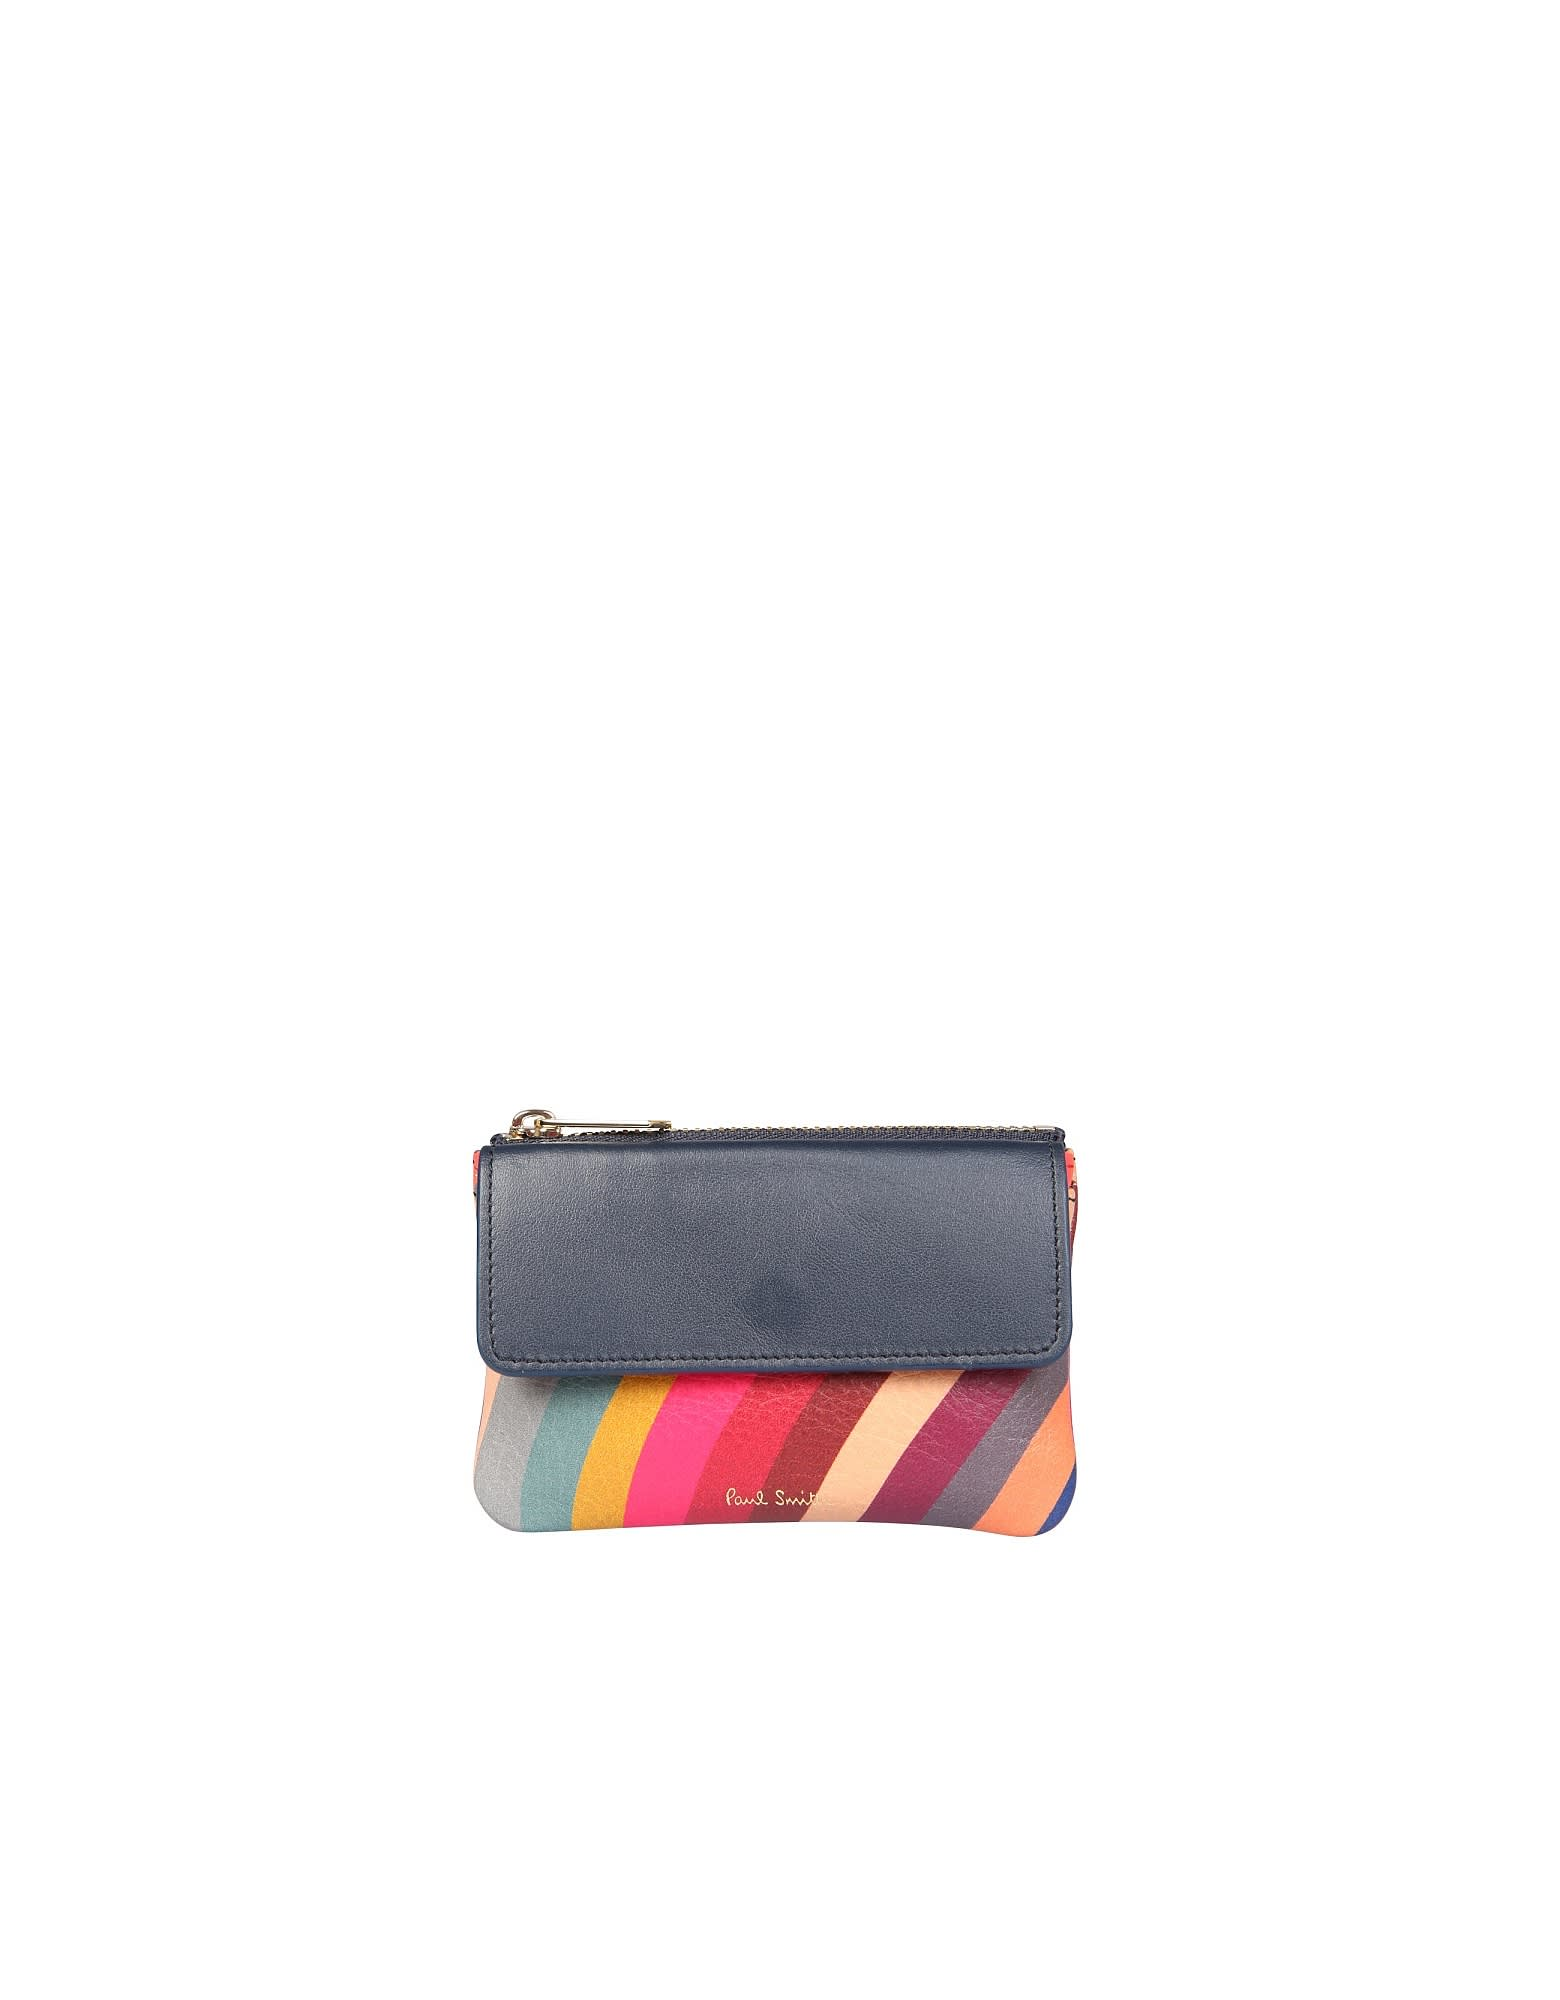 Paul Smith LEATHER PURSE